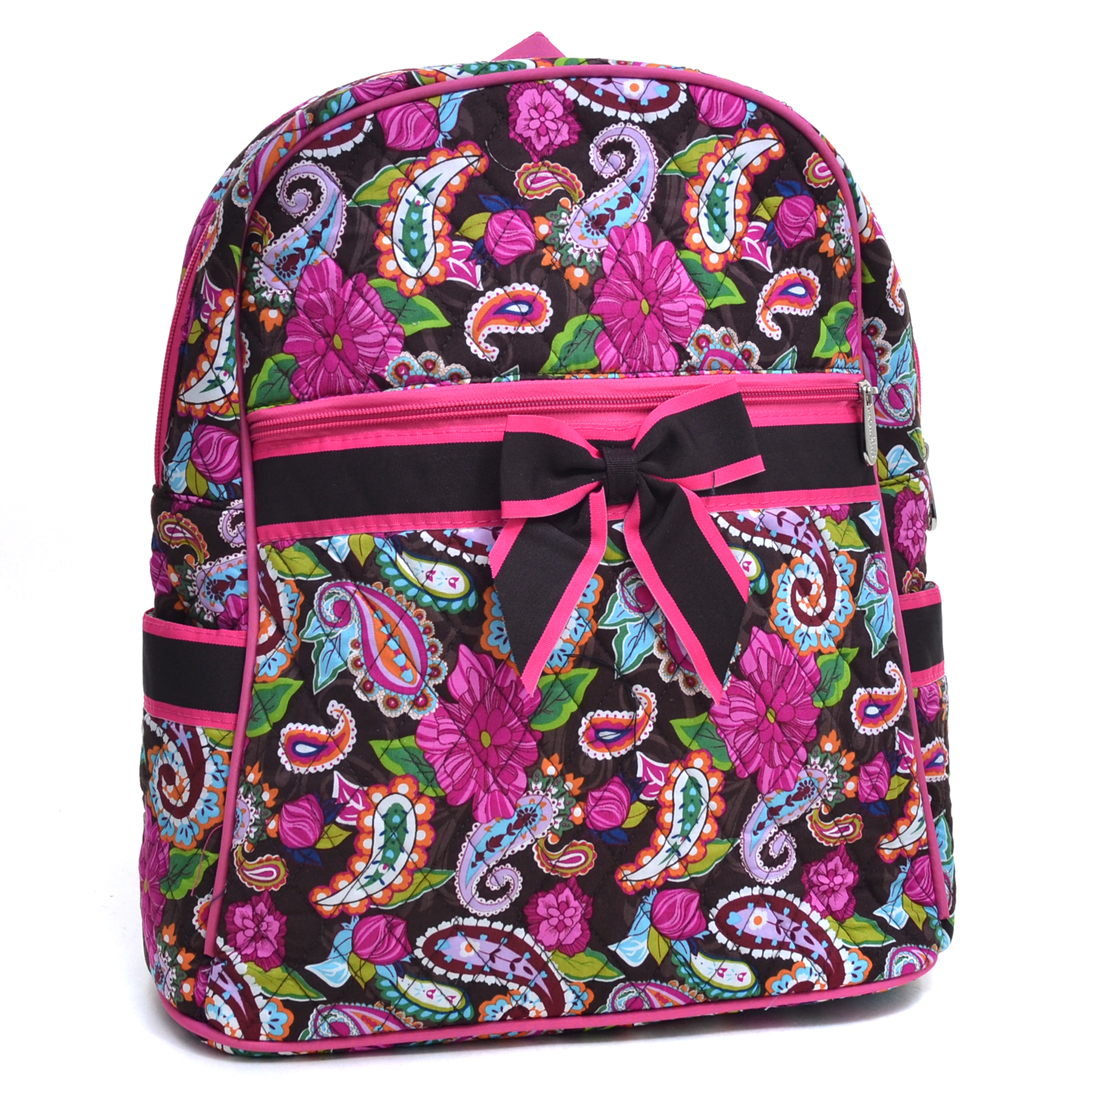 Rosen Blue® Paisley Printed Quilted Backpack - Brown